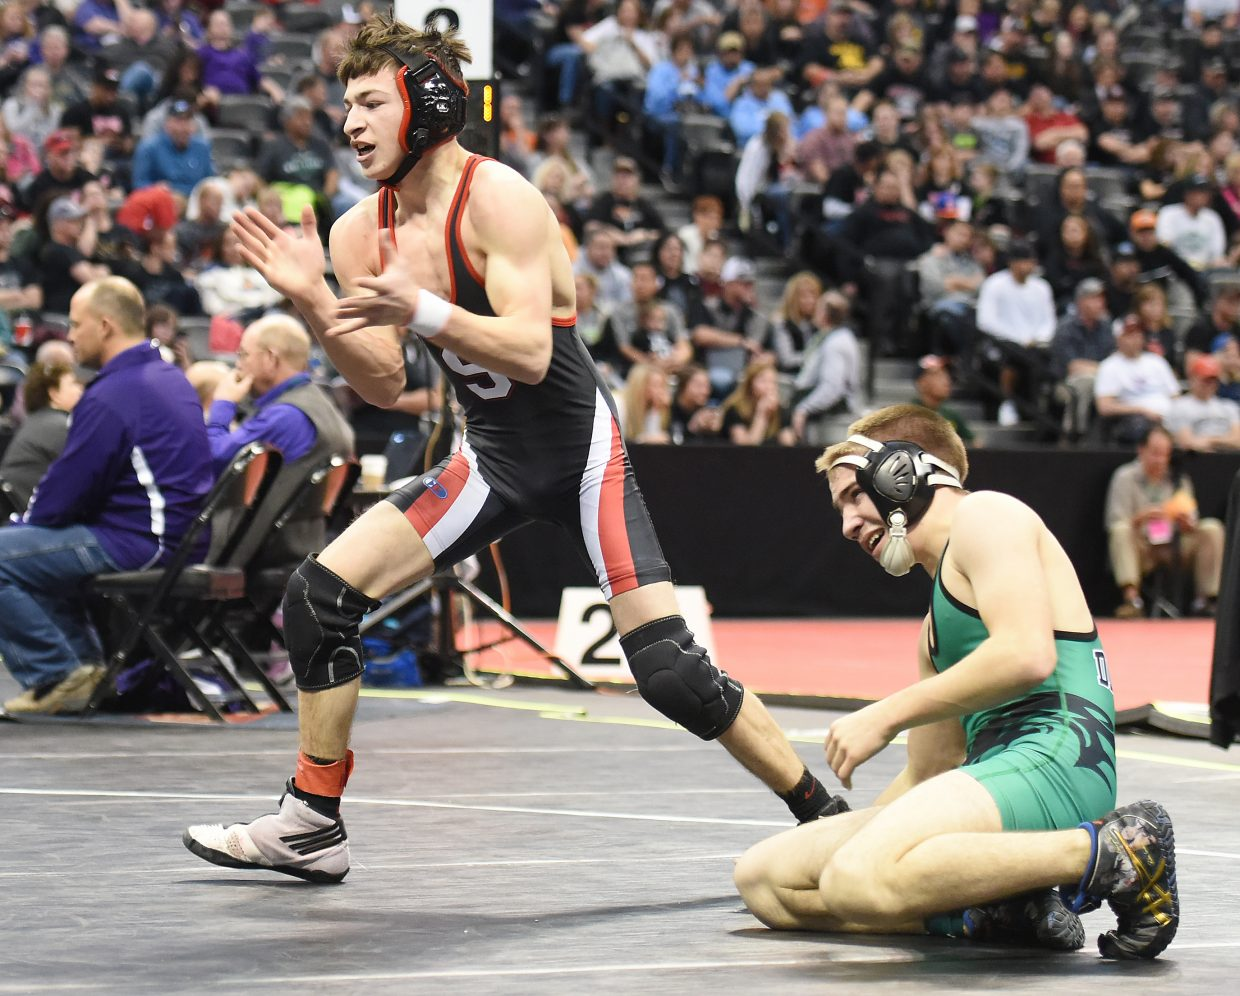 Steamboat Springs junior Colton Pasternak celebrates after beating Delta senior Luke Anderson to secure fifth place in the Class 3A 106-pound bracket at the state wrestling tournament in Denver.